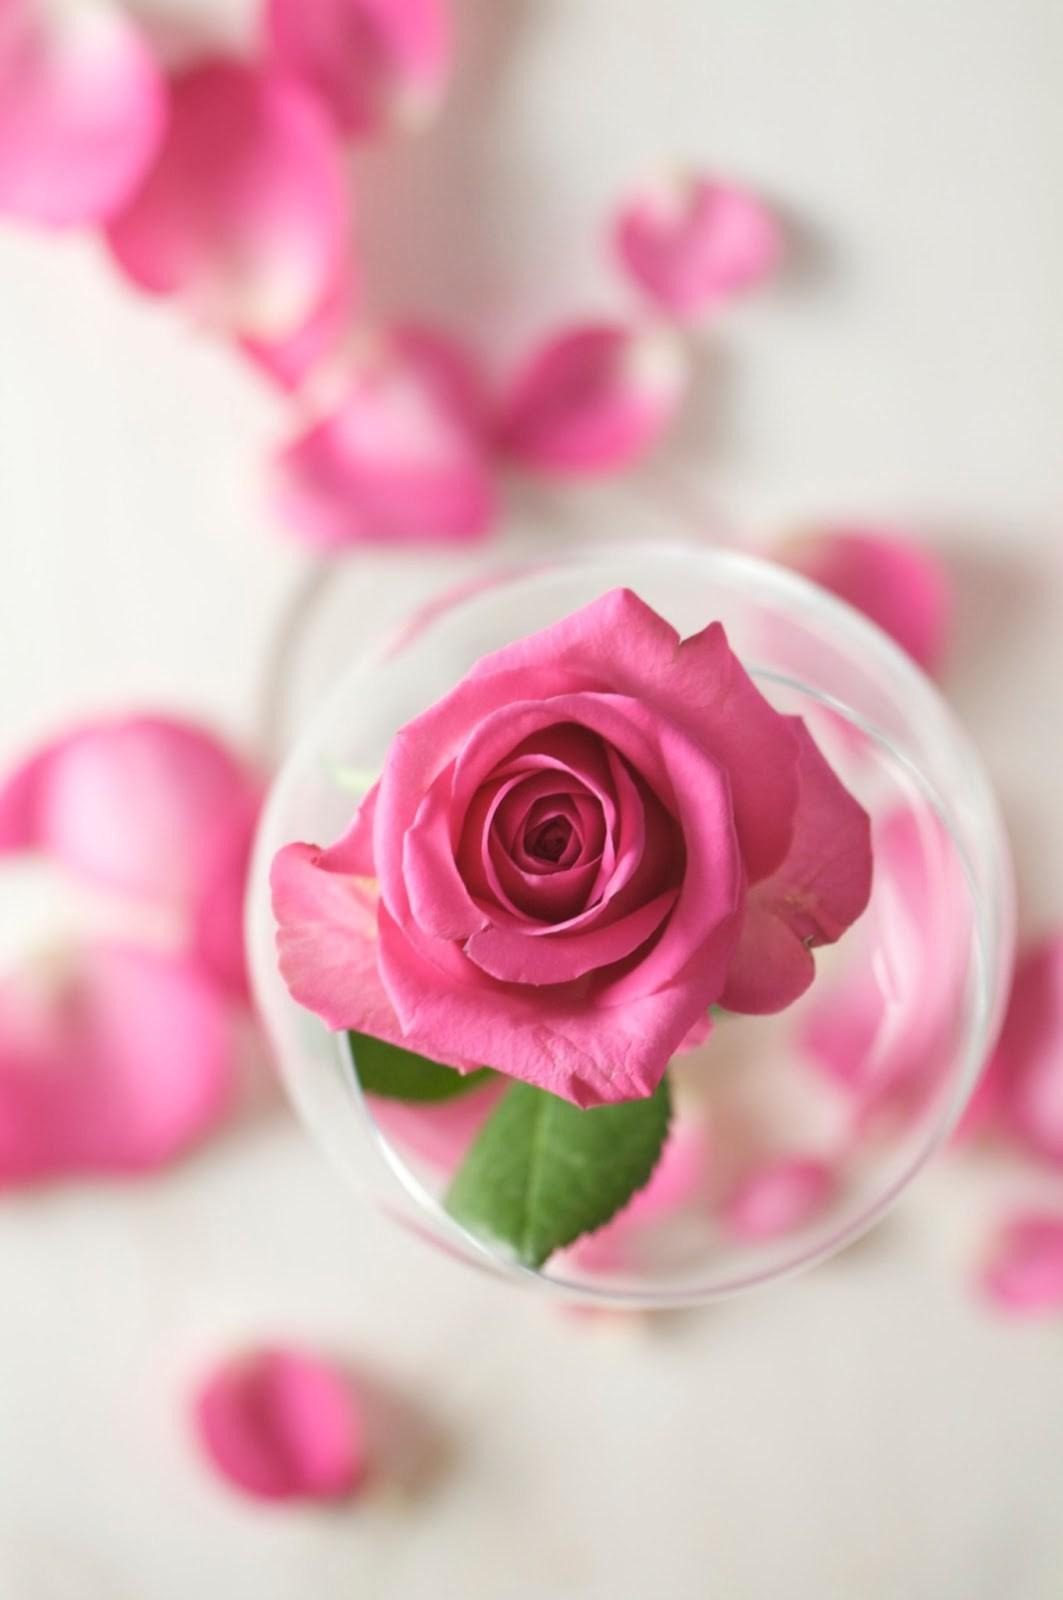 Make Your Own Rose Water Refresh Skin